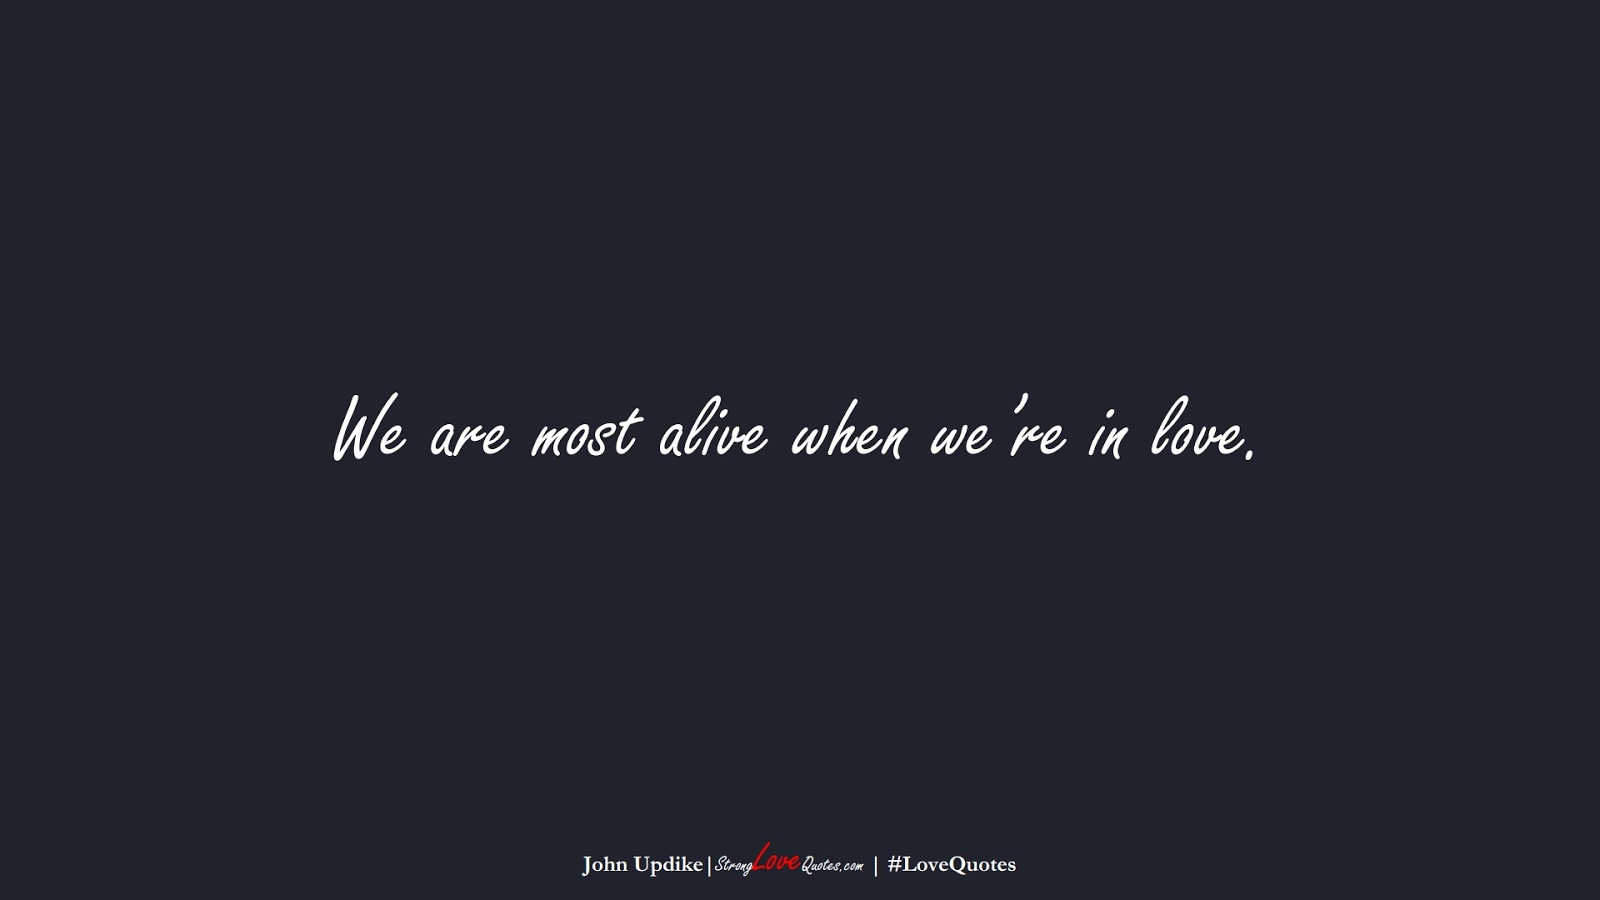 We are most alive when we're in love. (John Updike);  #LoveQuotes